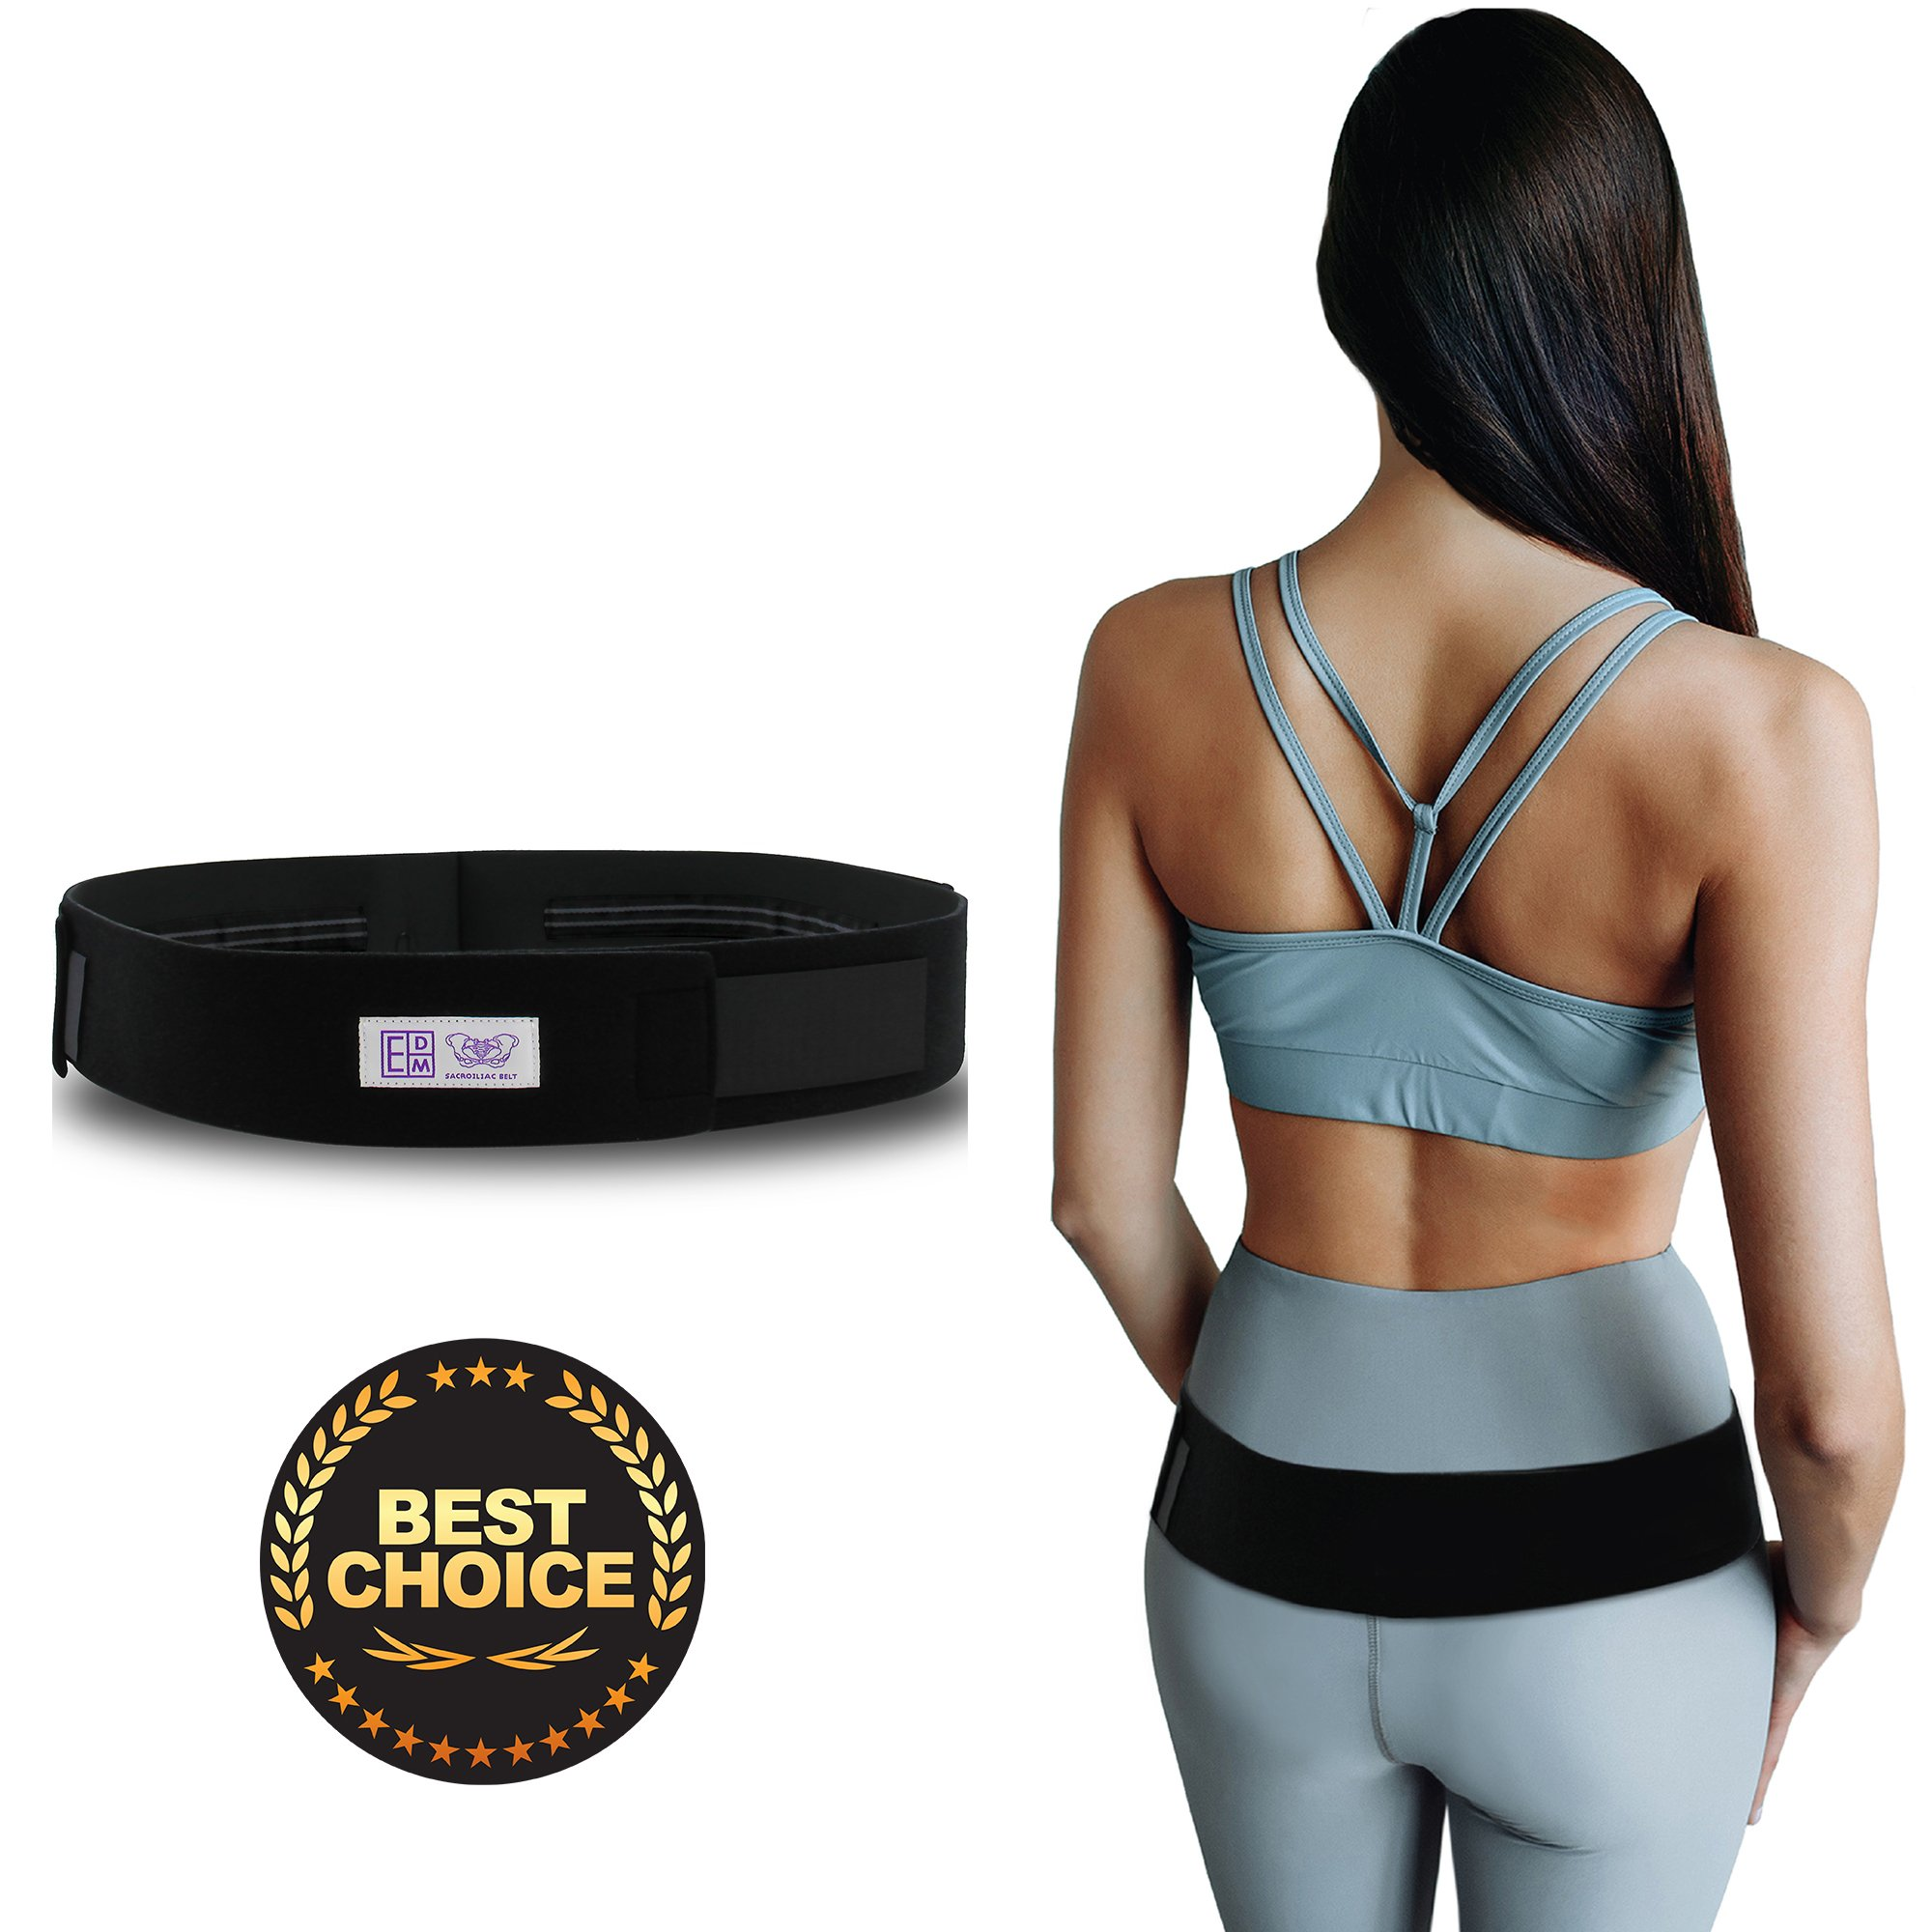 Everyday Medical Sacroiliac SI Joint Support Belt for Pelvic and SI Pain Relief - Supports The Sacroiliac Joint - Alleviates Hip Pain, Lower Back, Sciatica, Lumbar and Discomfort (L - Hips 39-45'')